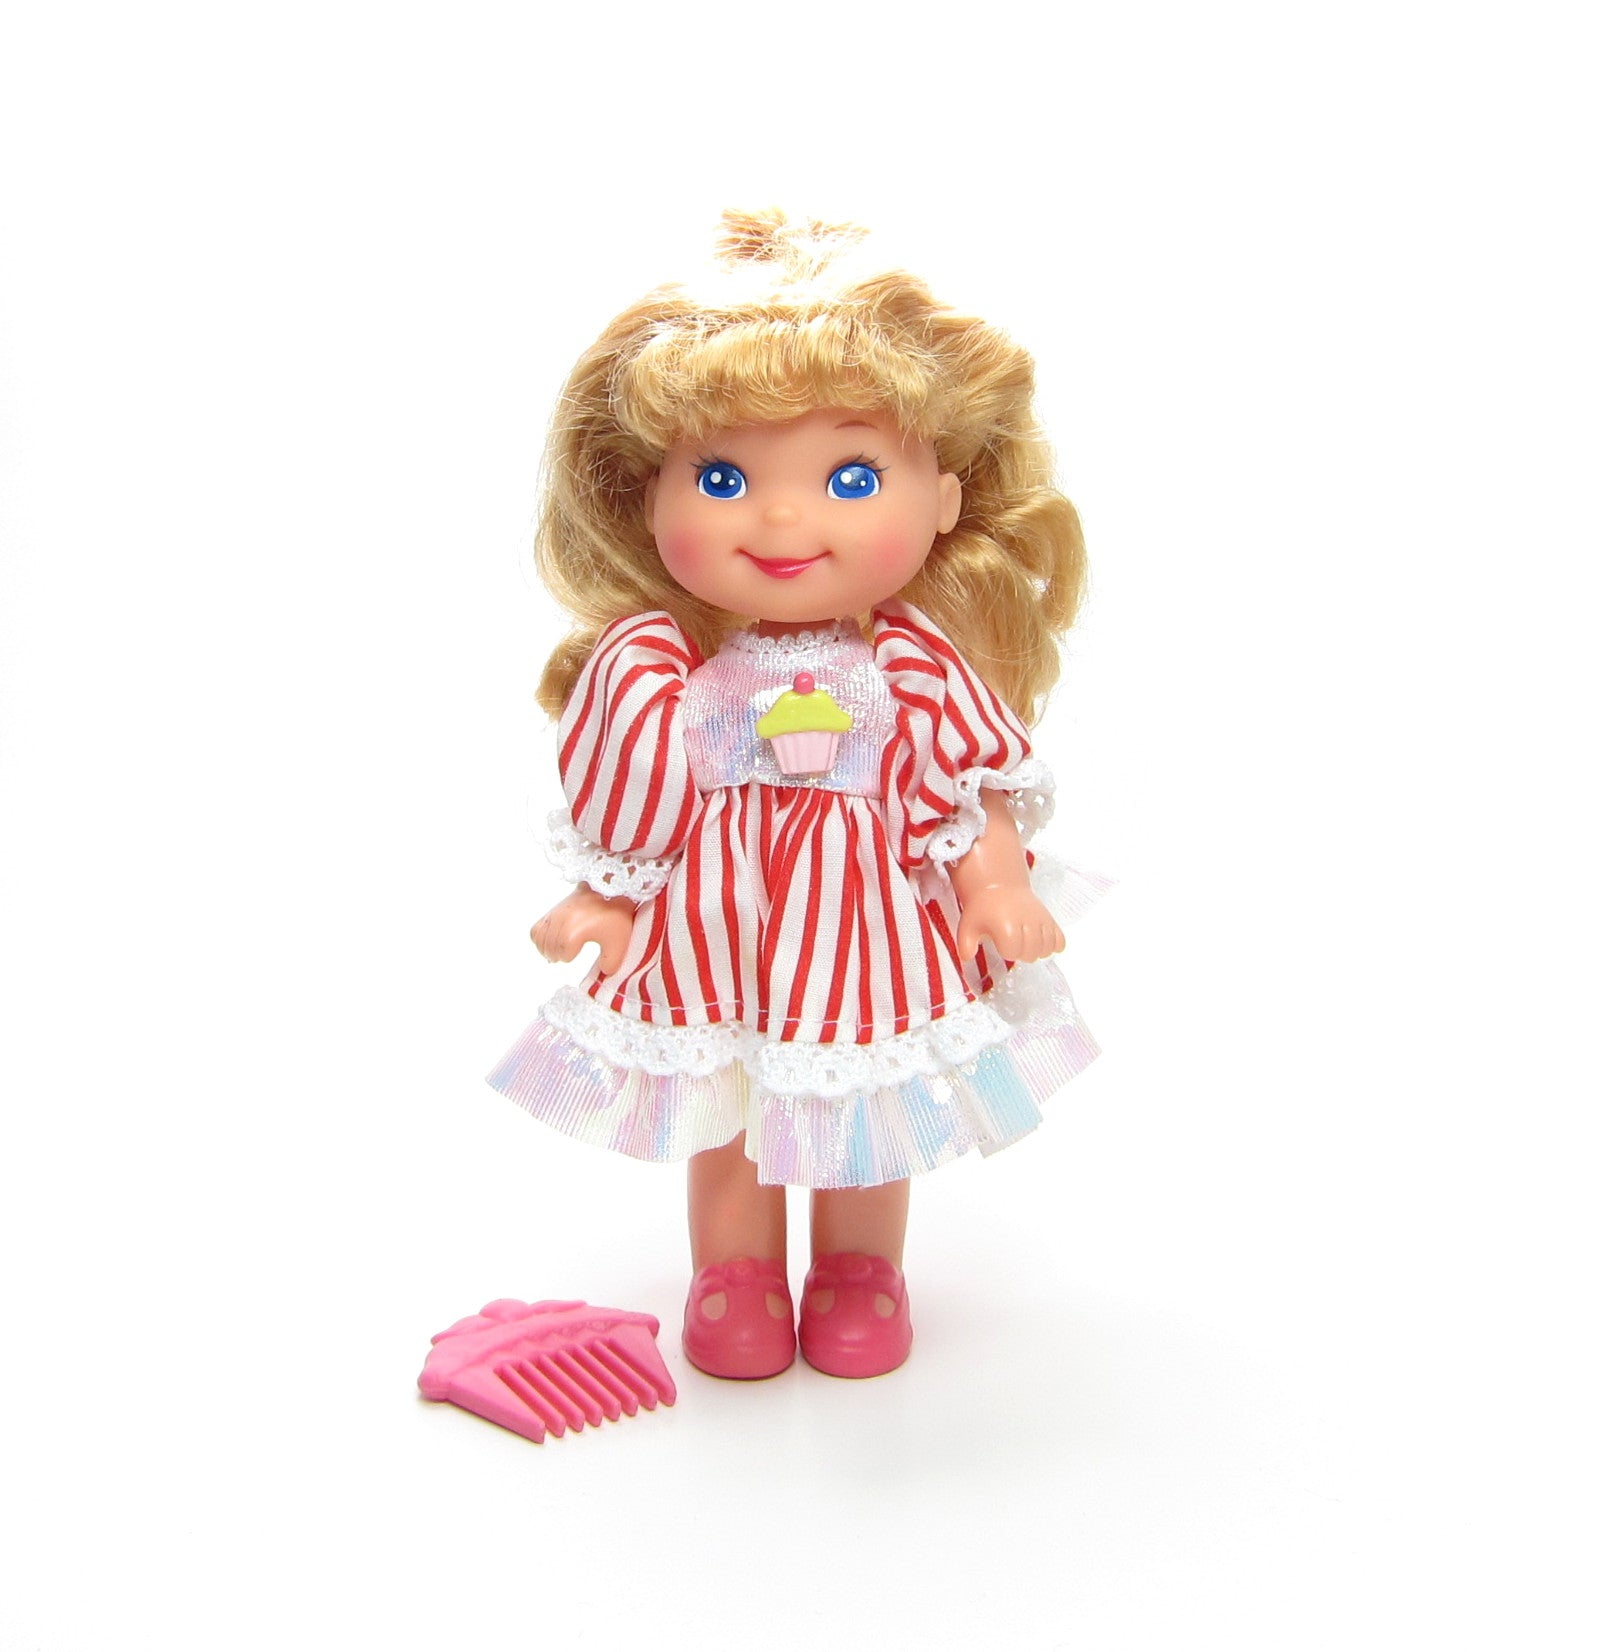 Penny Peppermint Cherry Merry Muffin doll with cupcake comb